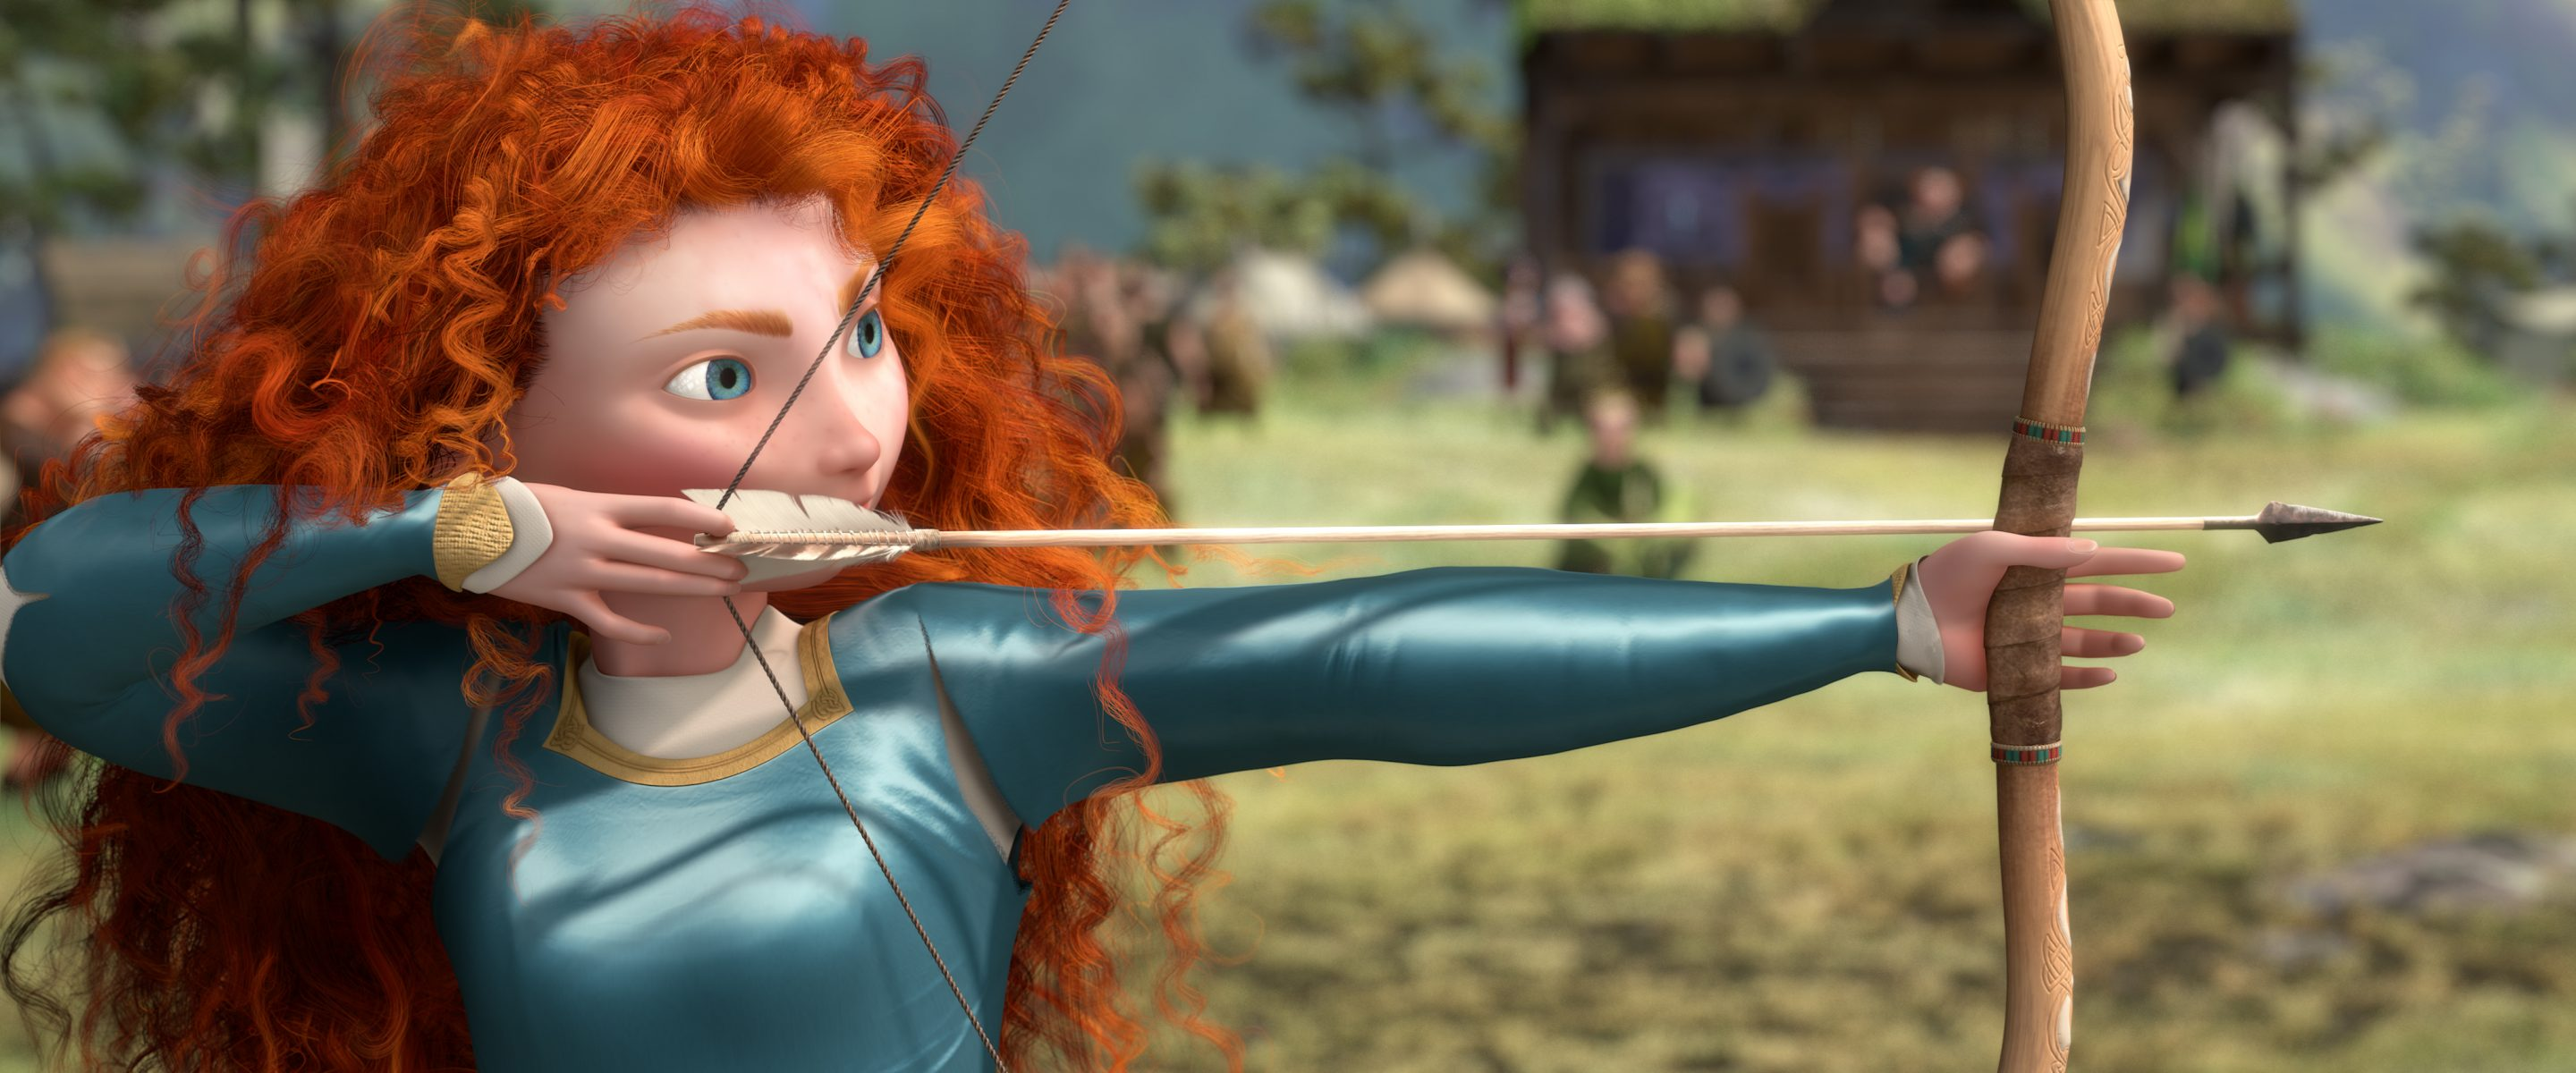 Disney Pixar's Brave Comes to DVD and Blu-Ray-What to Expect